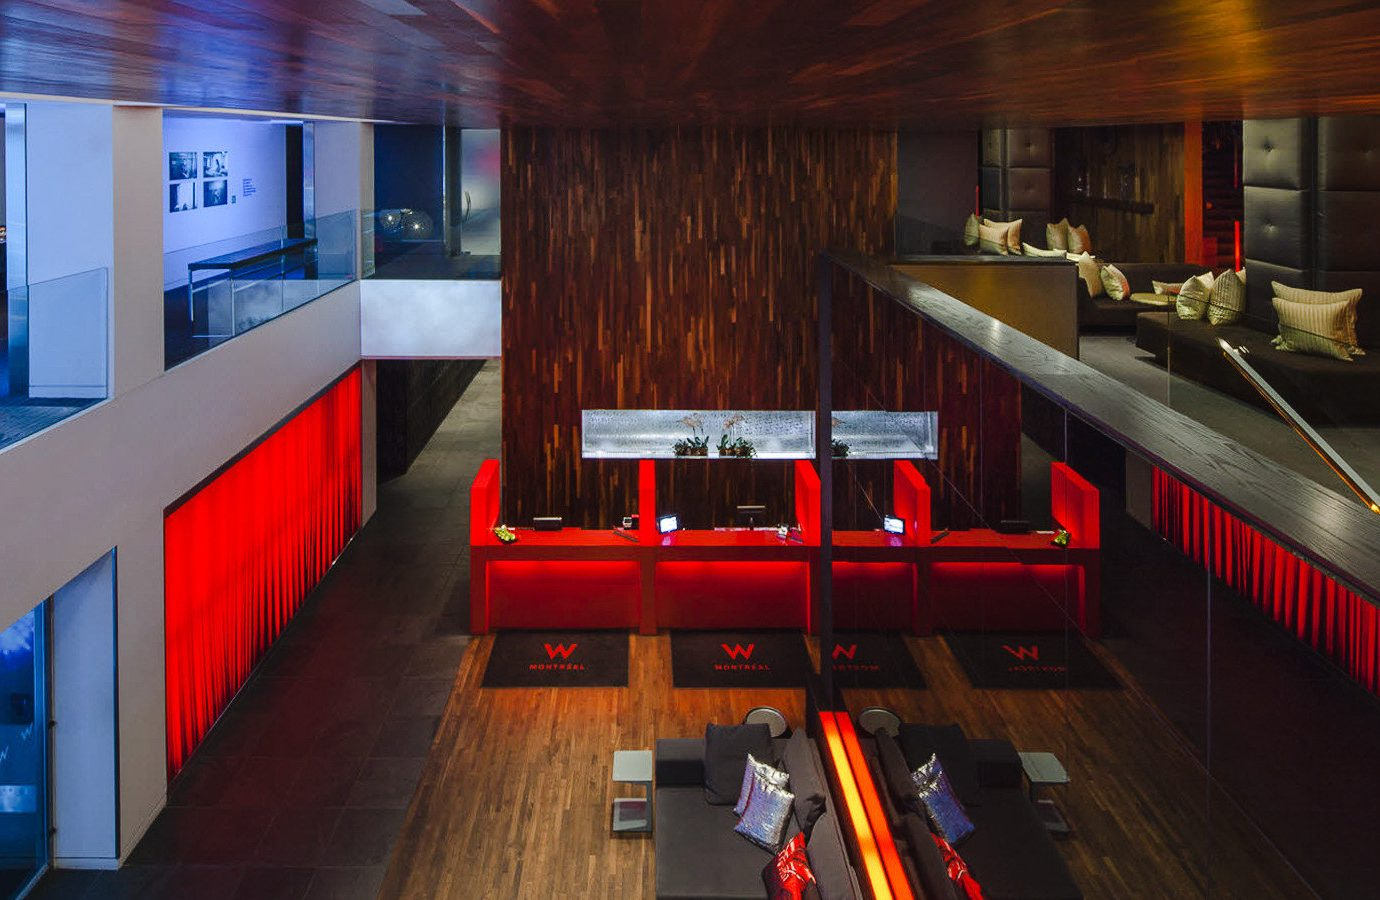 Canada Hotels Montreal Trip Ideas floor indoor Architecture interior design red ceiling restaurant Lobby recreation room table wood